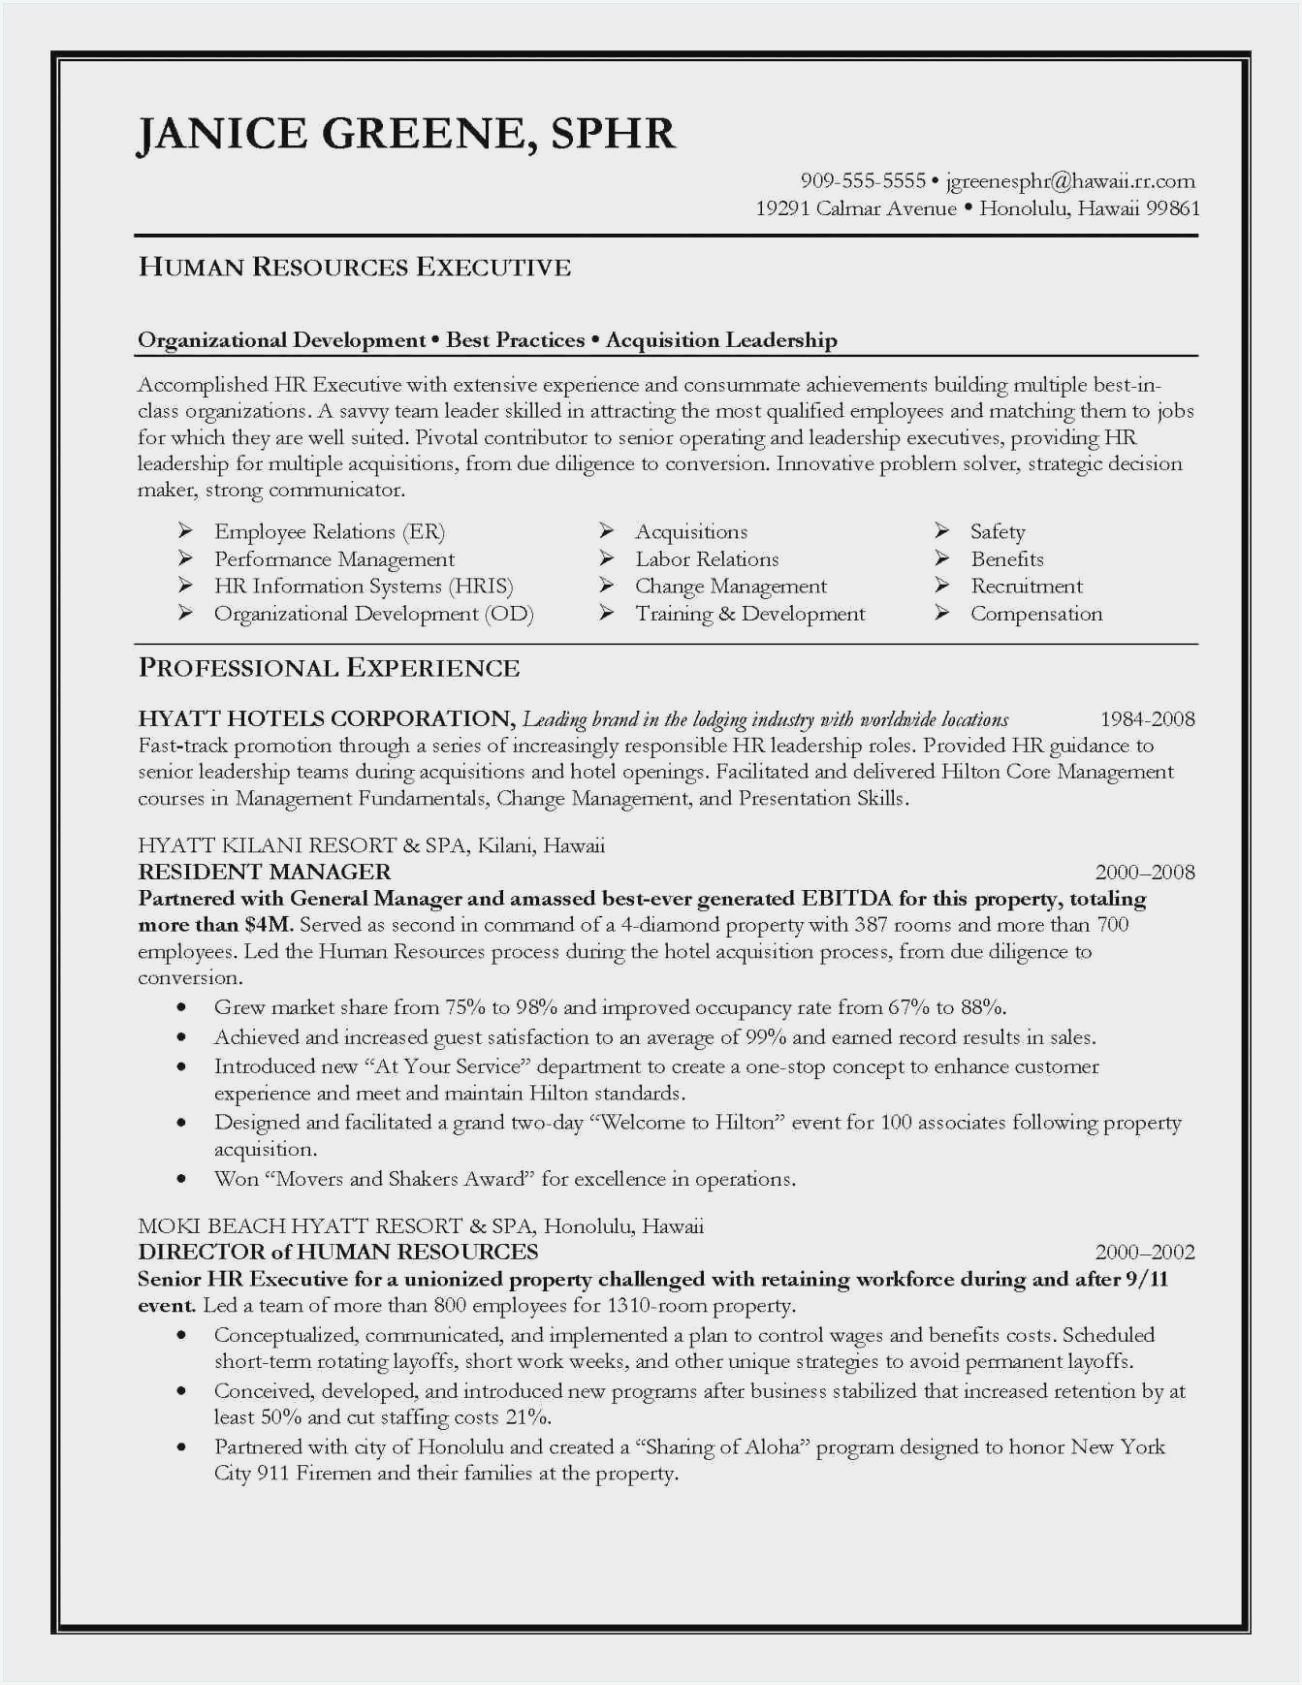 resume objective examples for leadership sample training position entry level zety Resume Resume Objective For Training Position